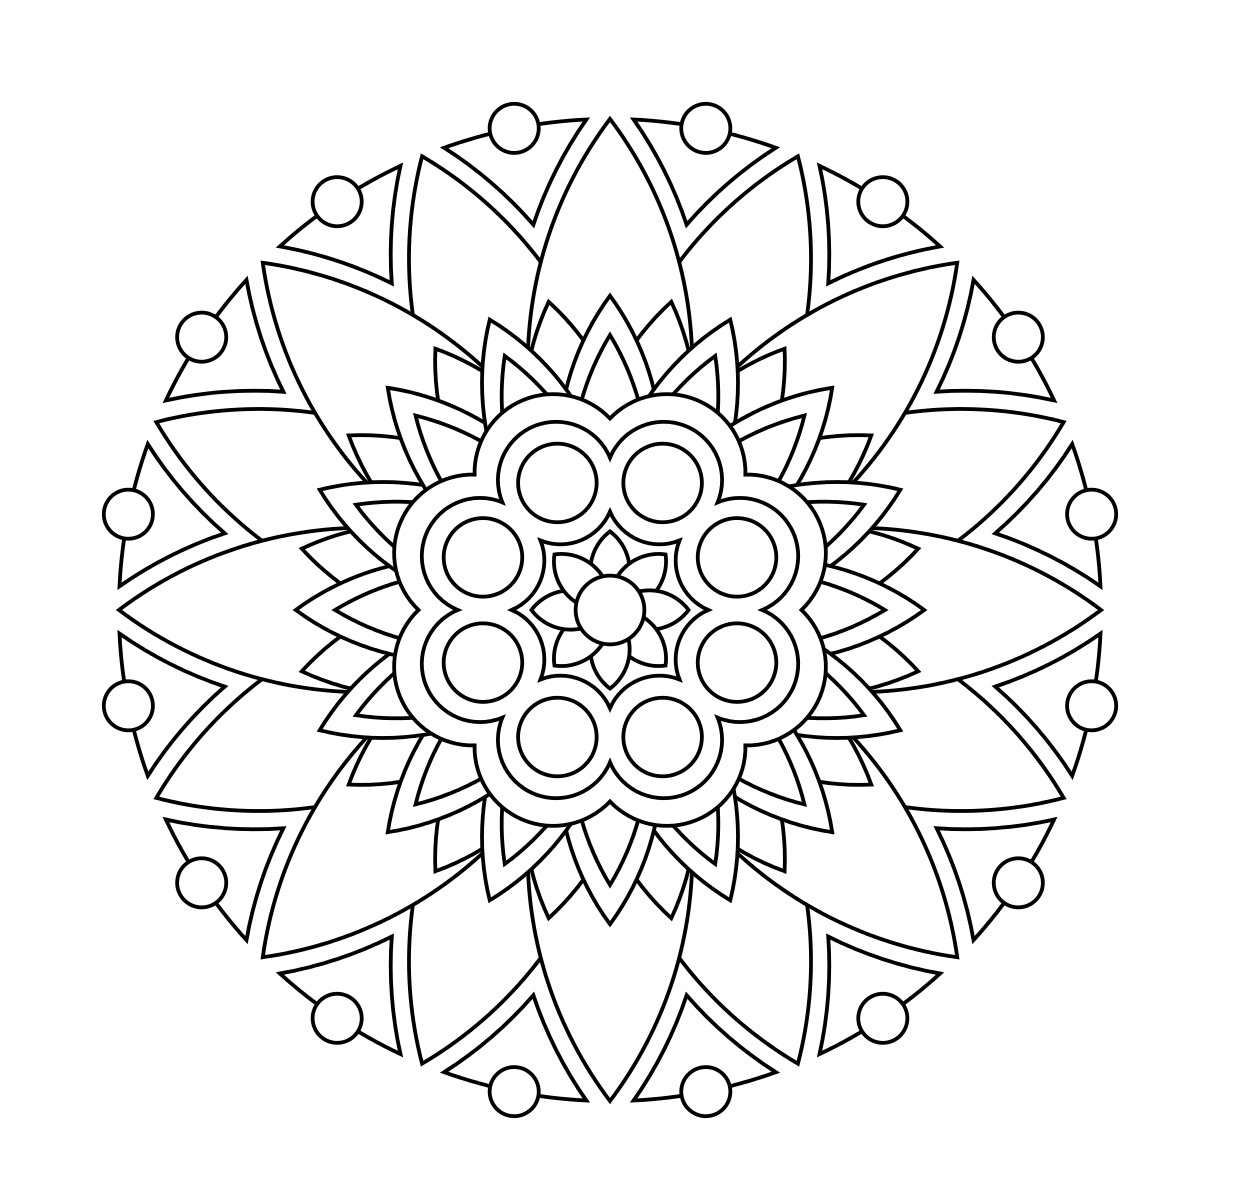 Mind coloring #8, Download drawings